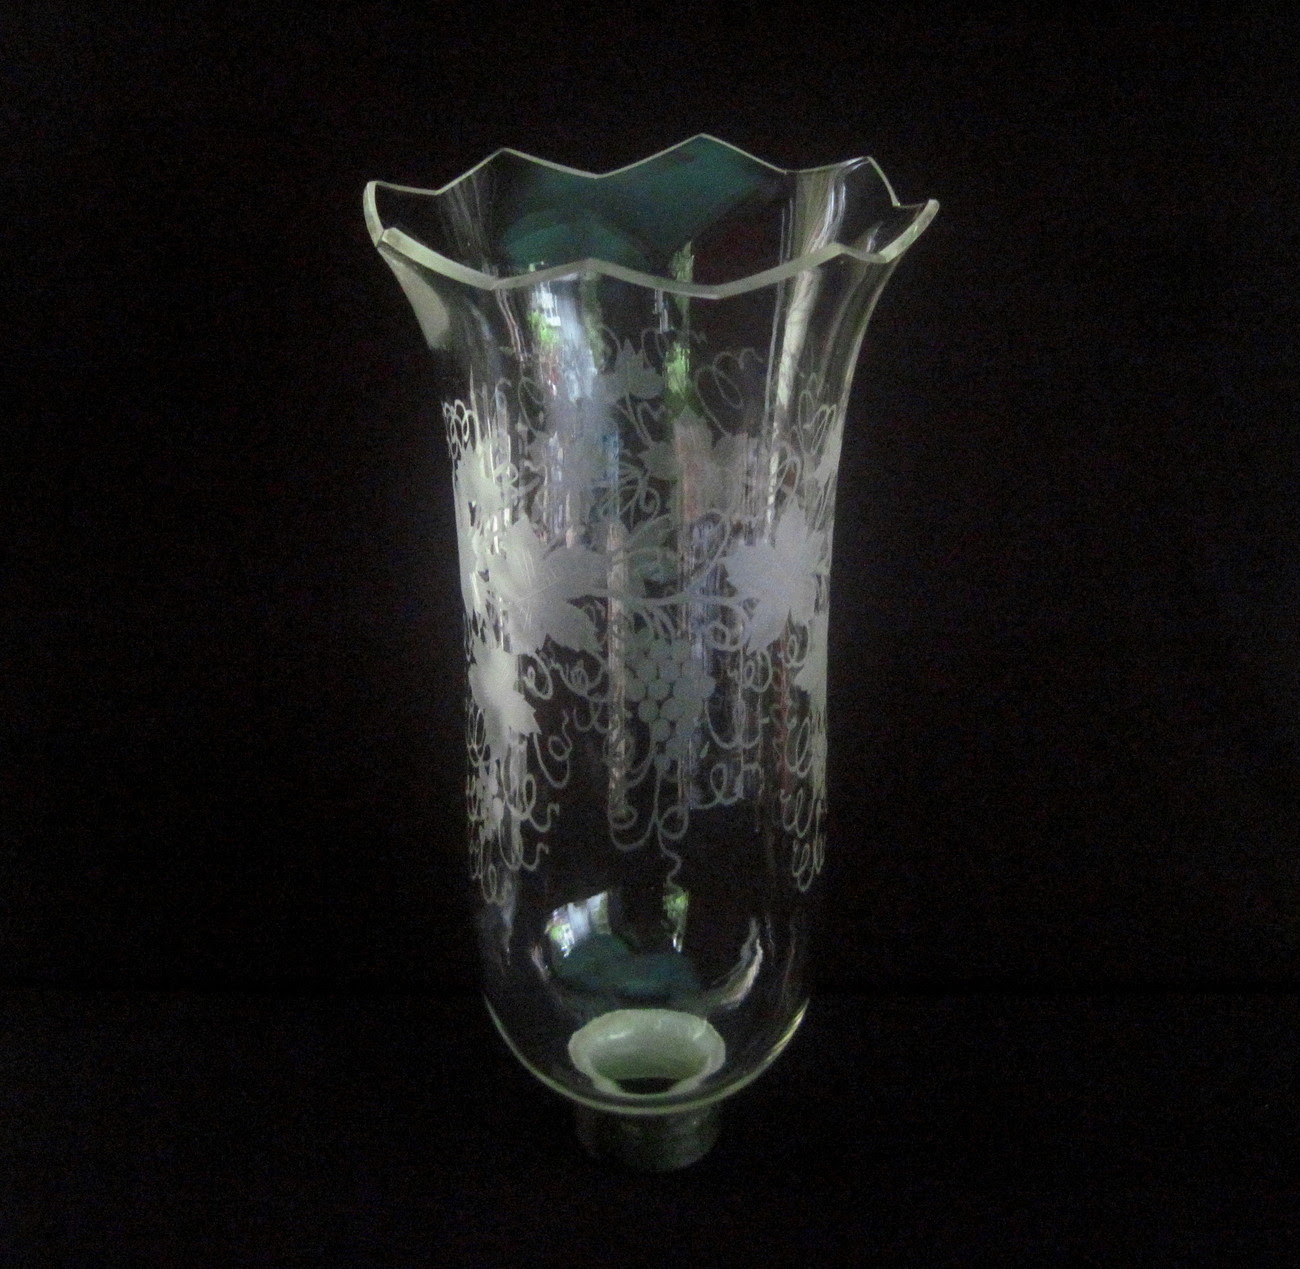 Glass Hurricane Shade 1.75 inch fitter x 11 h Grapevines XL Jagged